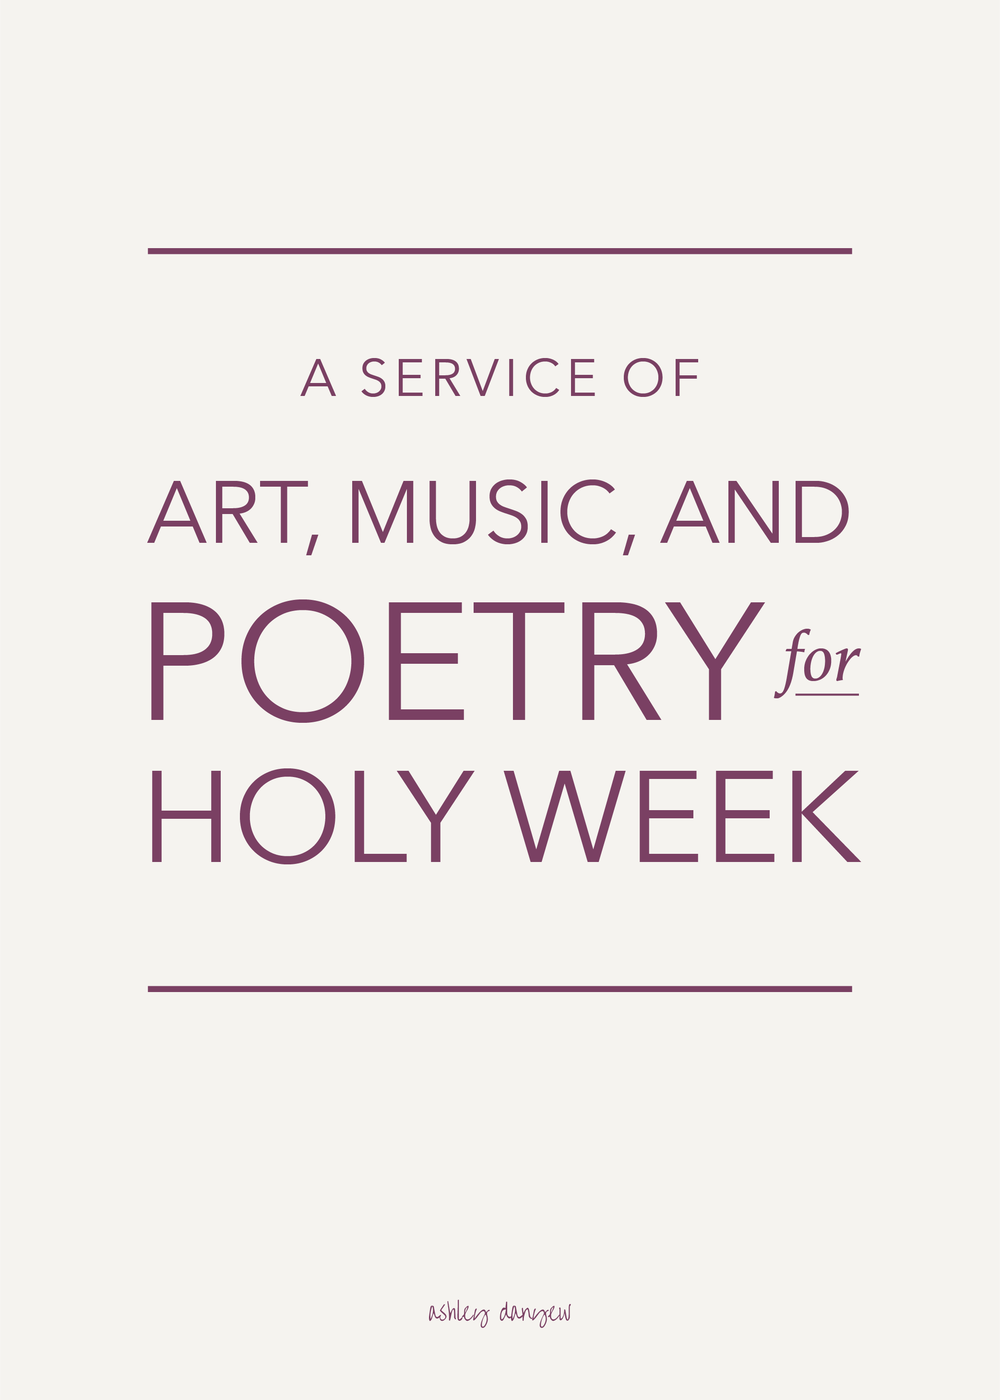 Copy of A Service of Art, Music, and Poetry for Holy Week